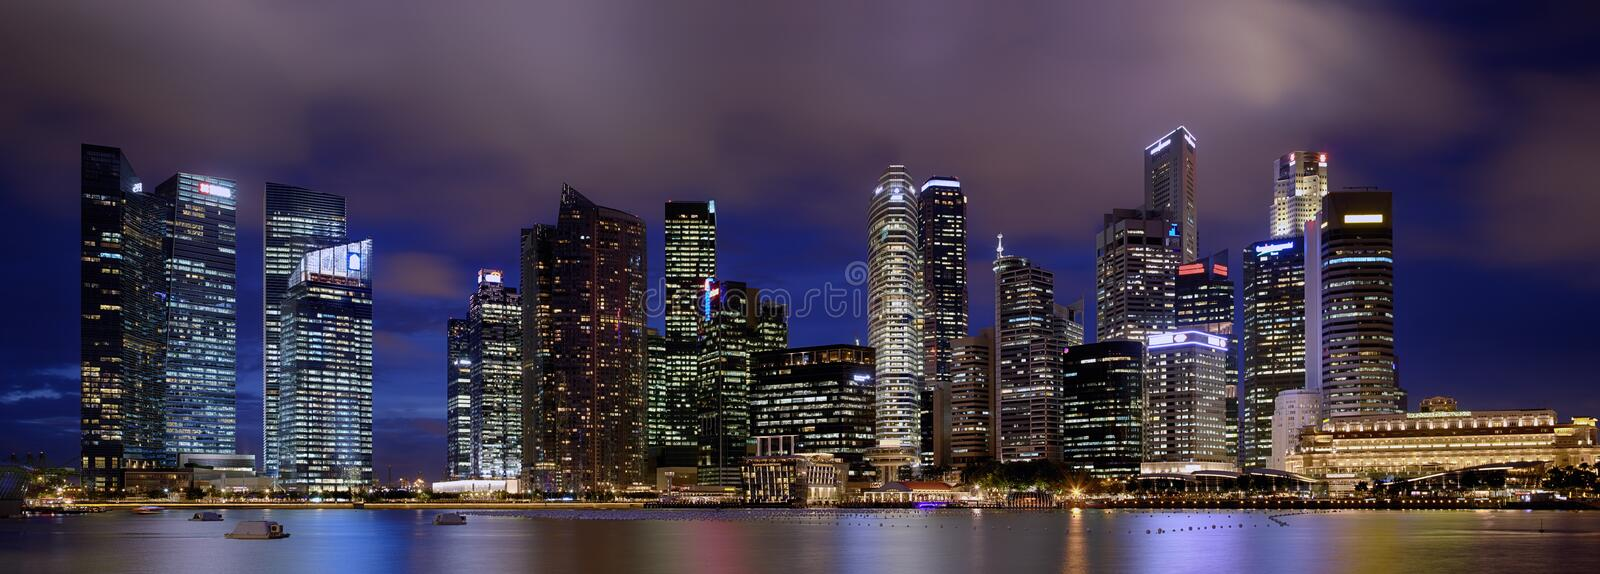 Download Panorama Of Singapore City Skyline Stock Image - Image: 36339741